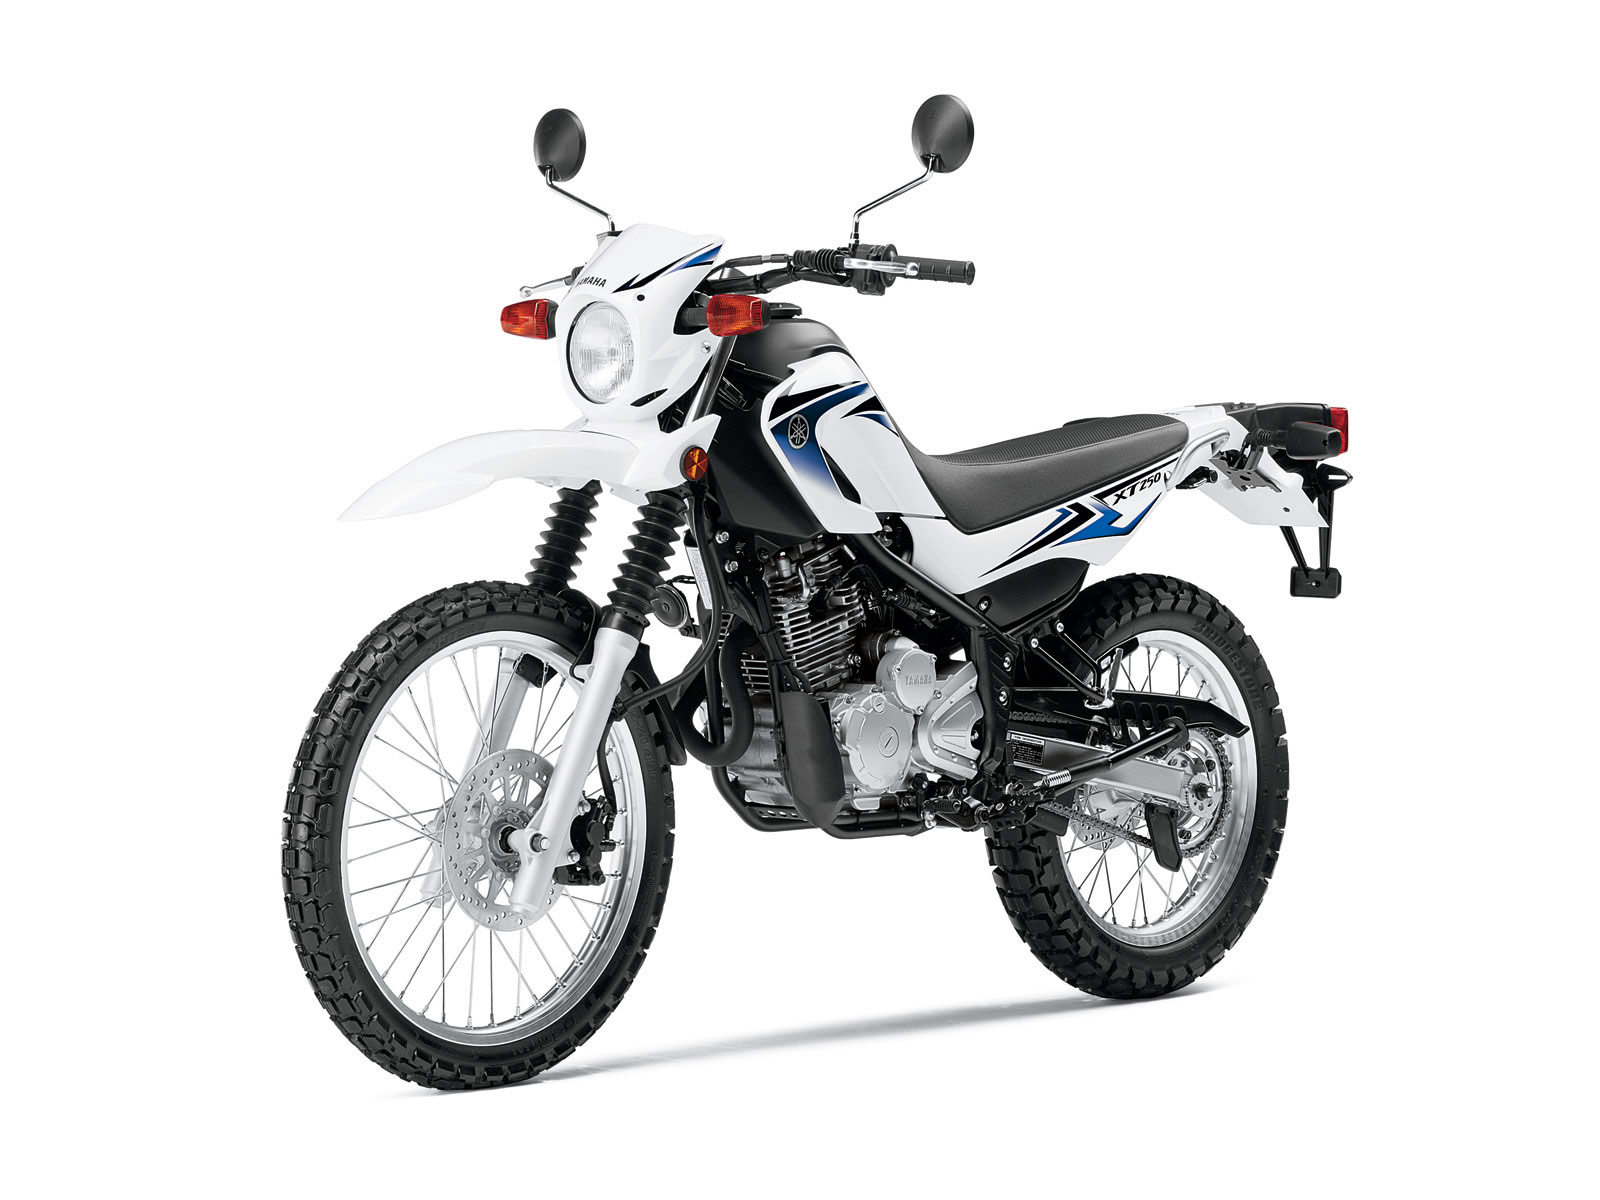 Yamaha Motorcycle Wallpaper Xt250